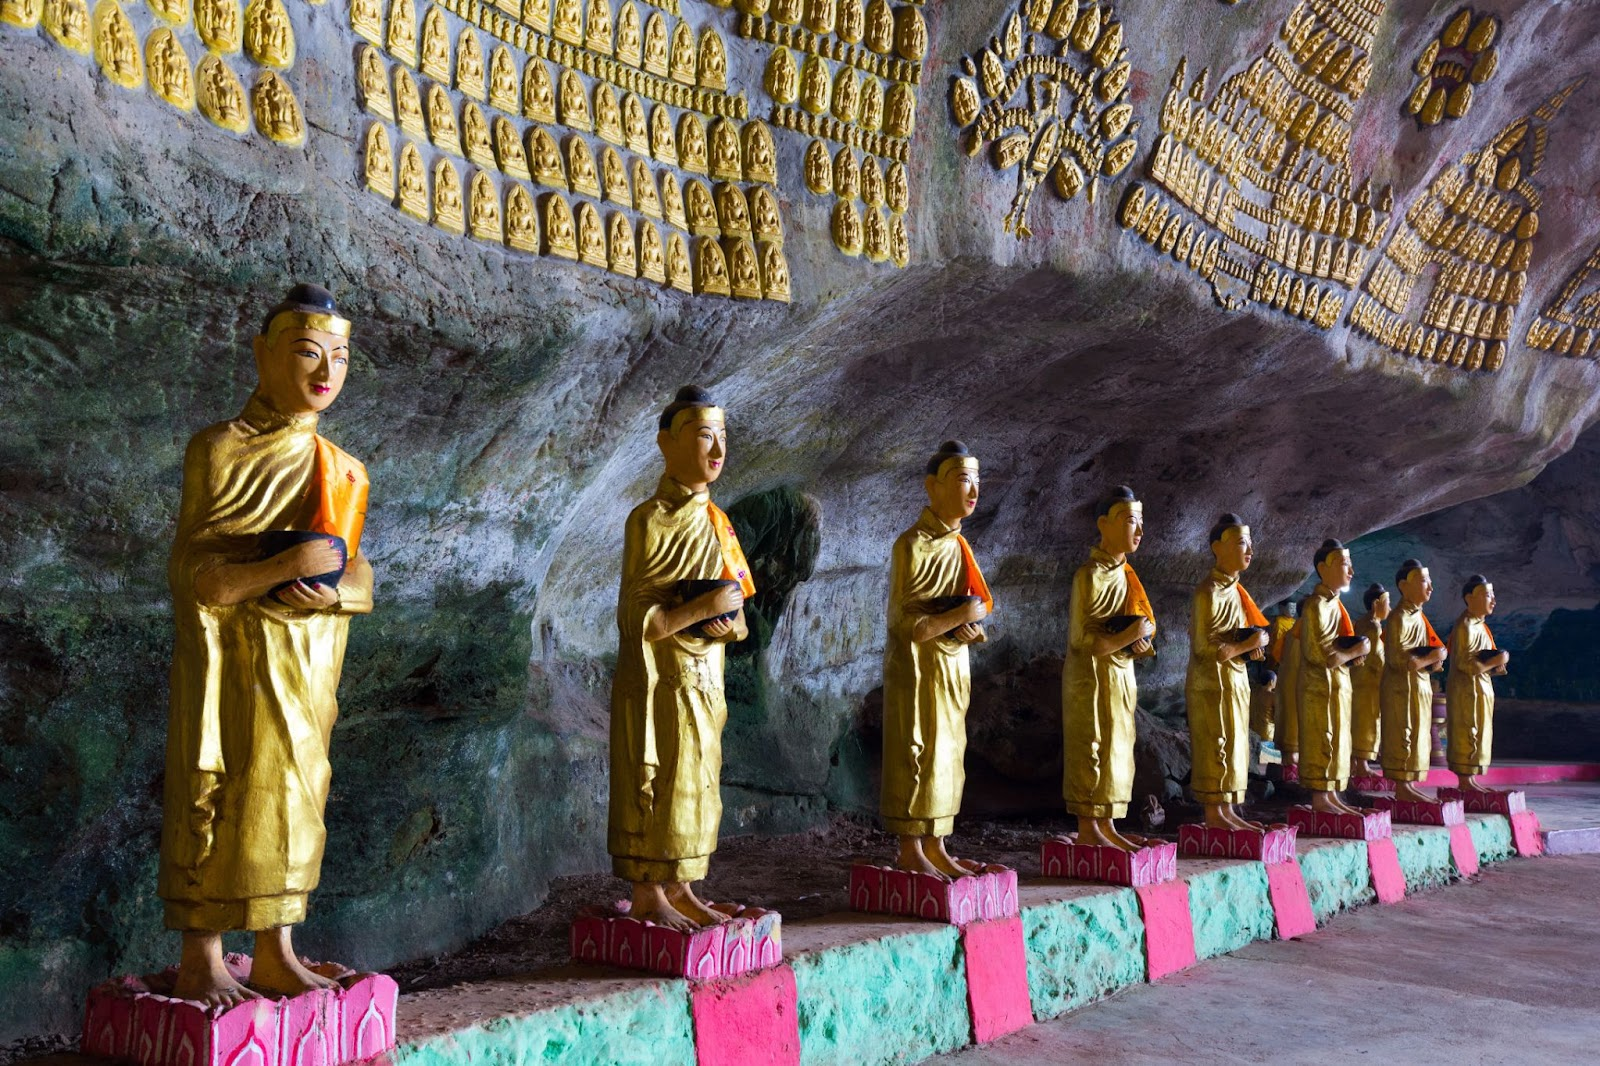 Thailand's temples and religious sights are a top cultural experience